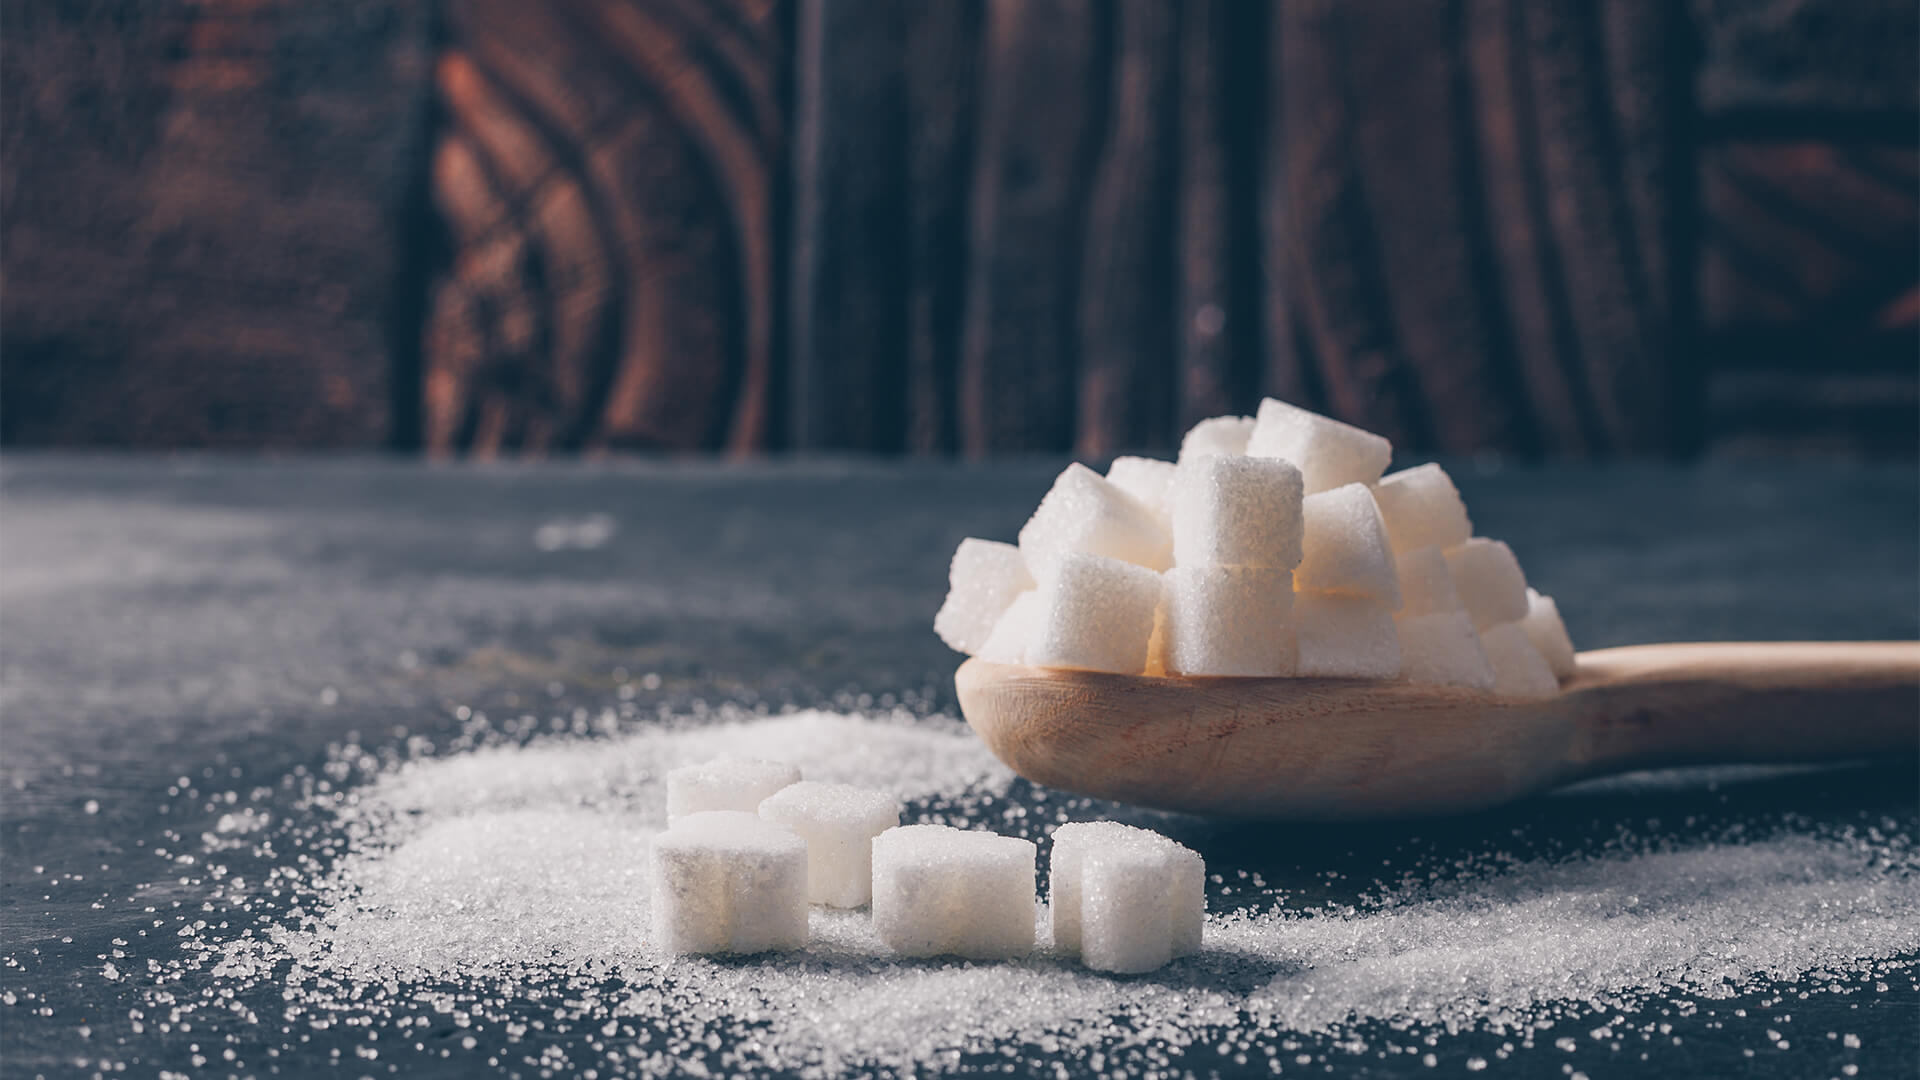 Processed-sugar Products don't go with PCOS